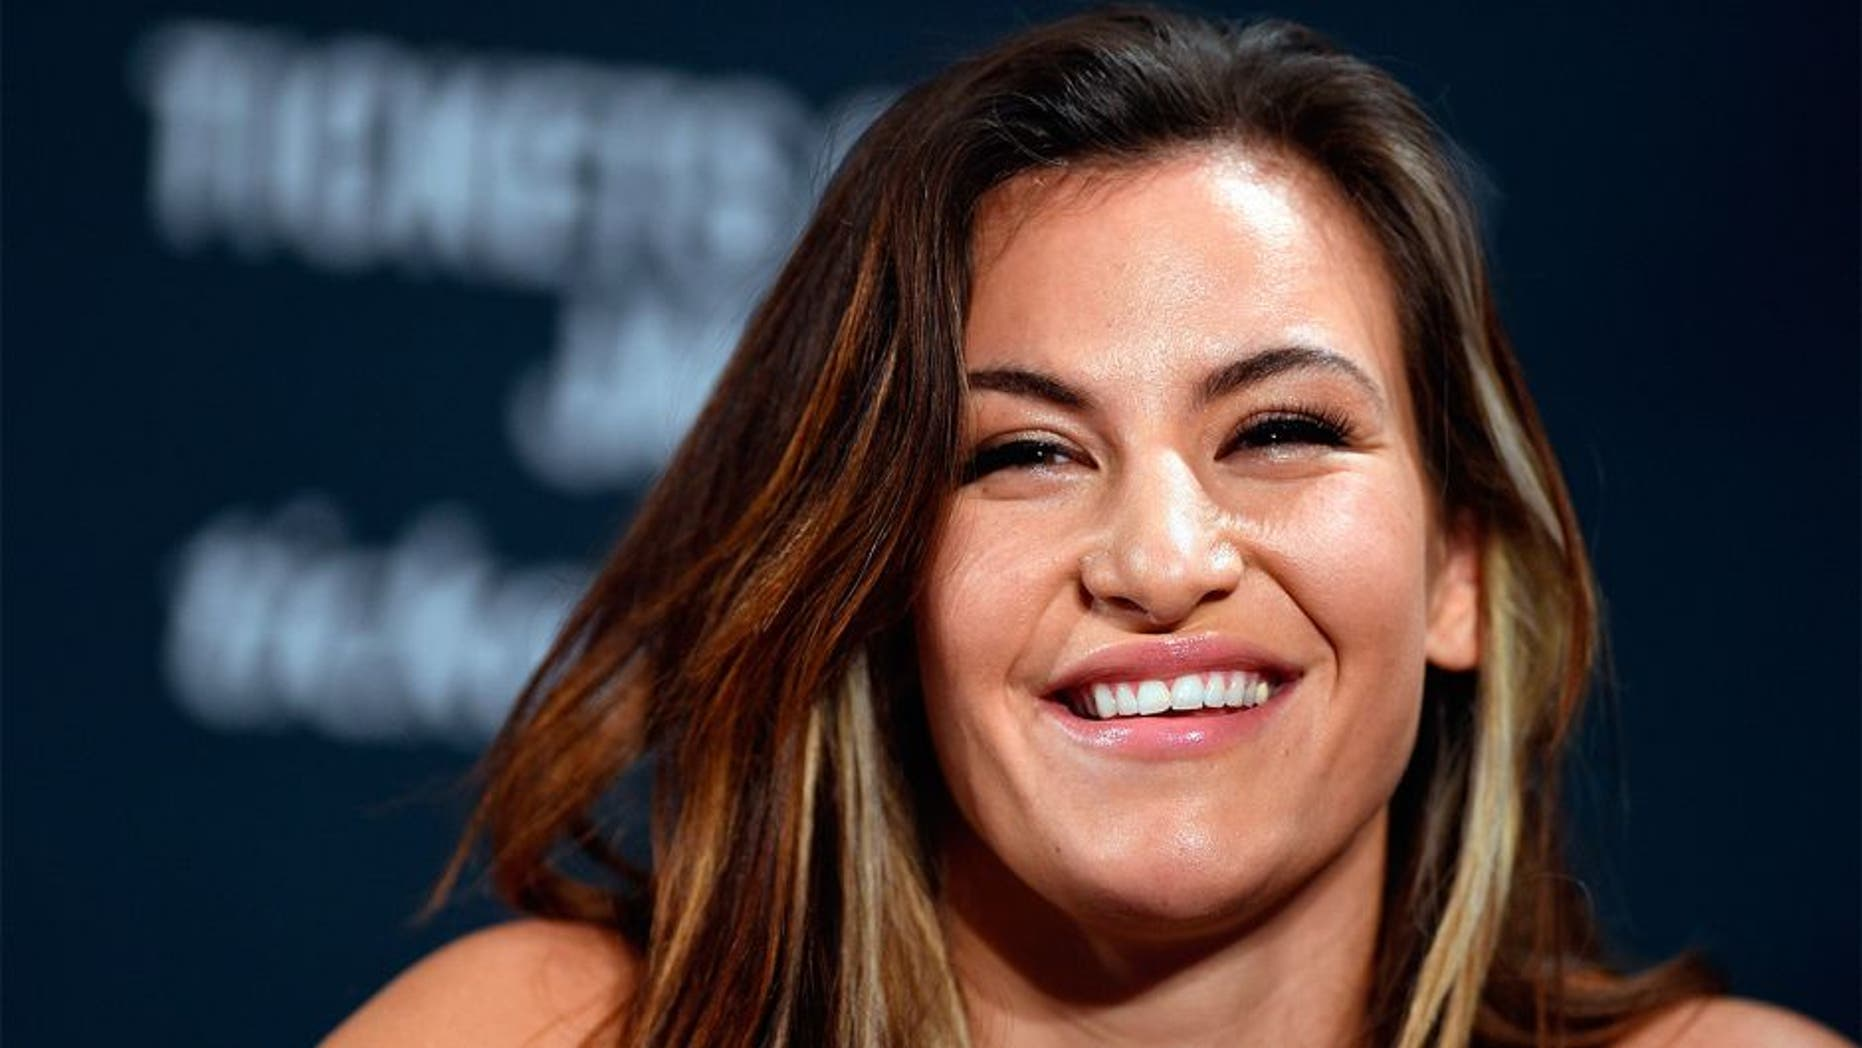 LAS VEGAS, NV - JANUARY 20: UFC women's bantamweight challenger Miesha Tate interacts with he media during the UFC 197 on-sale press conference event inside MGM Grand Hotel & Casino on January 20, 2016 in Las Vegas, Nevada. (Photo by Jeff Bottari/Zuffa LLC/Zuffa LLC via Getty Images)